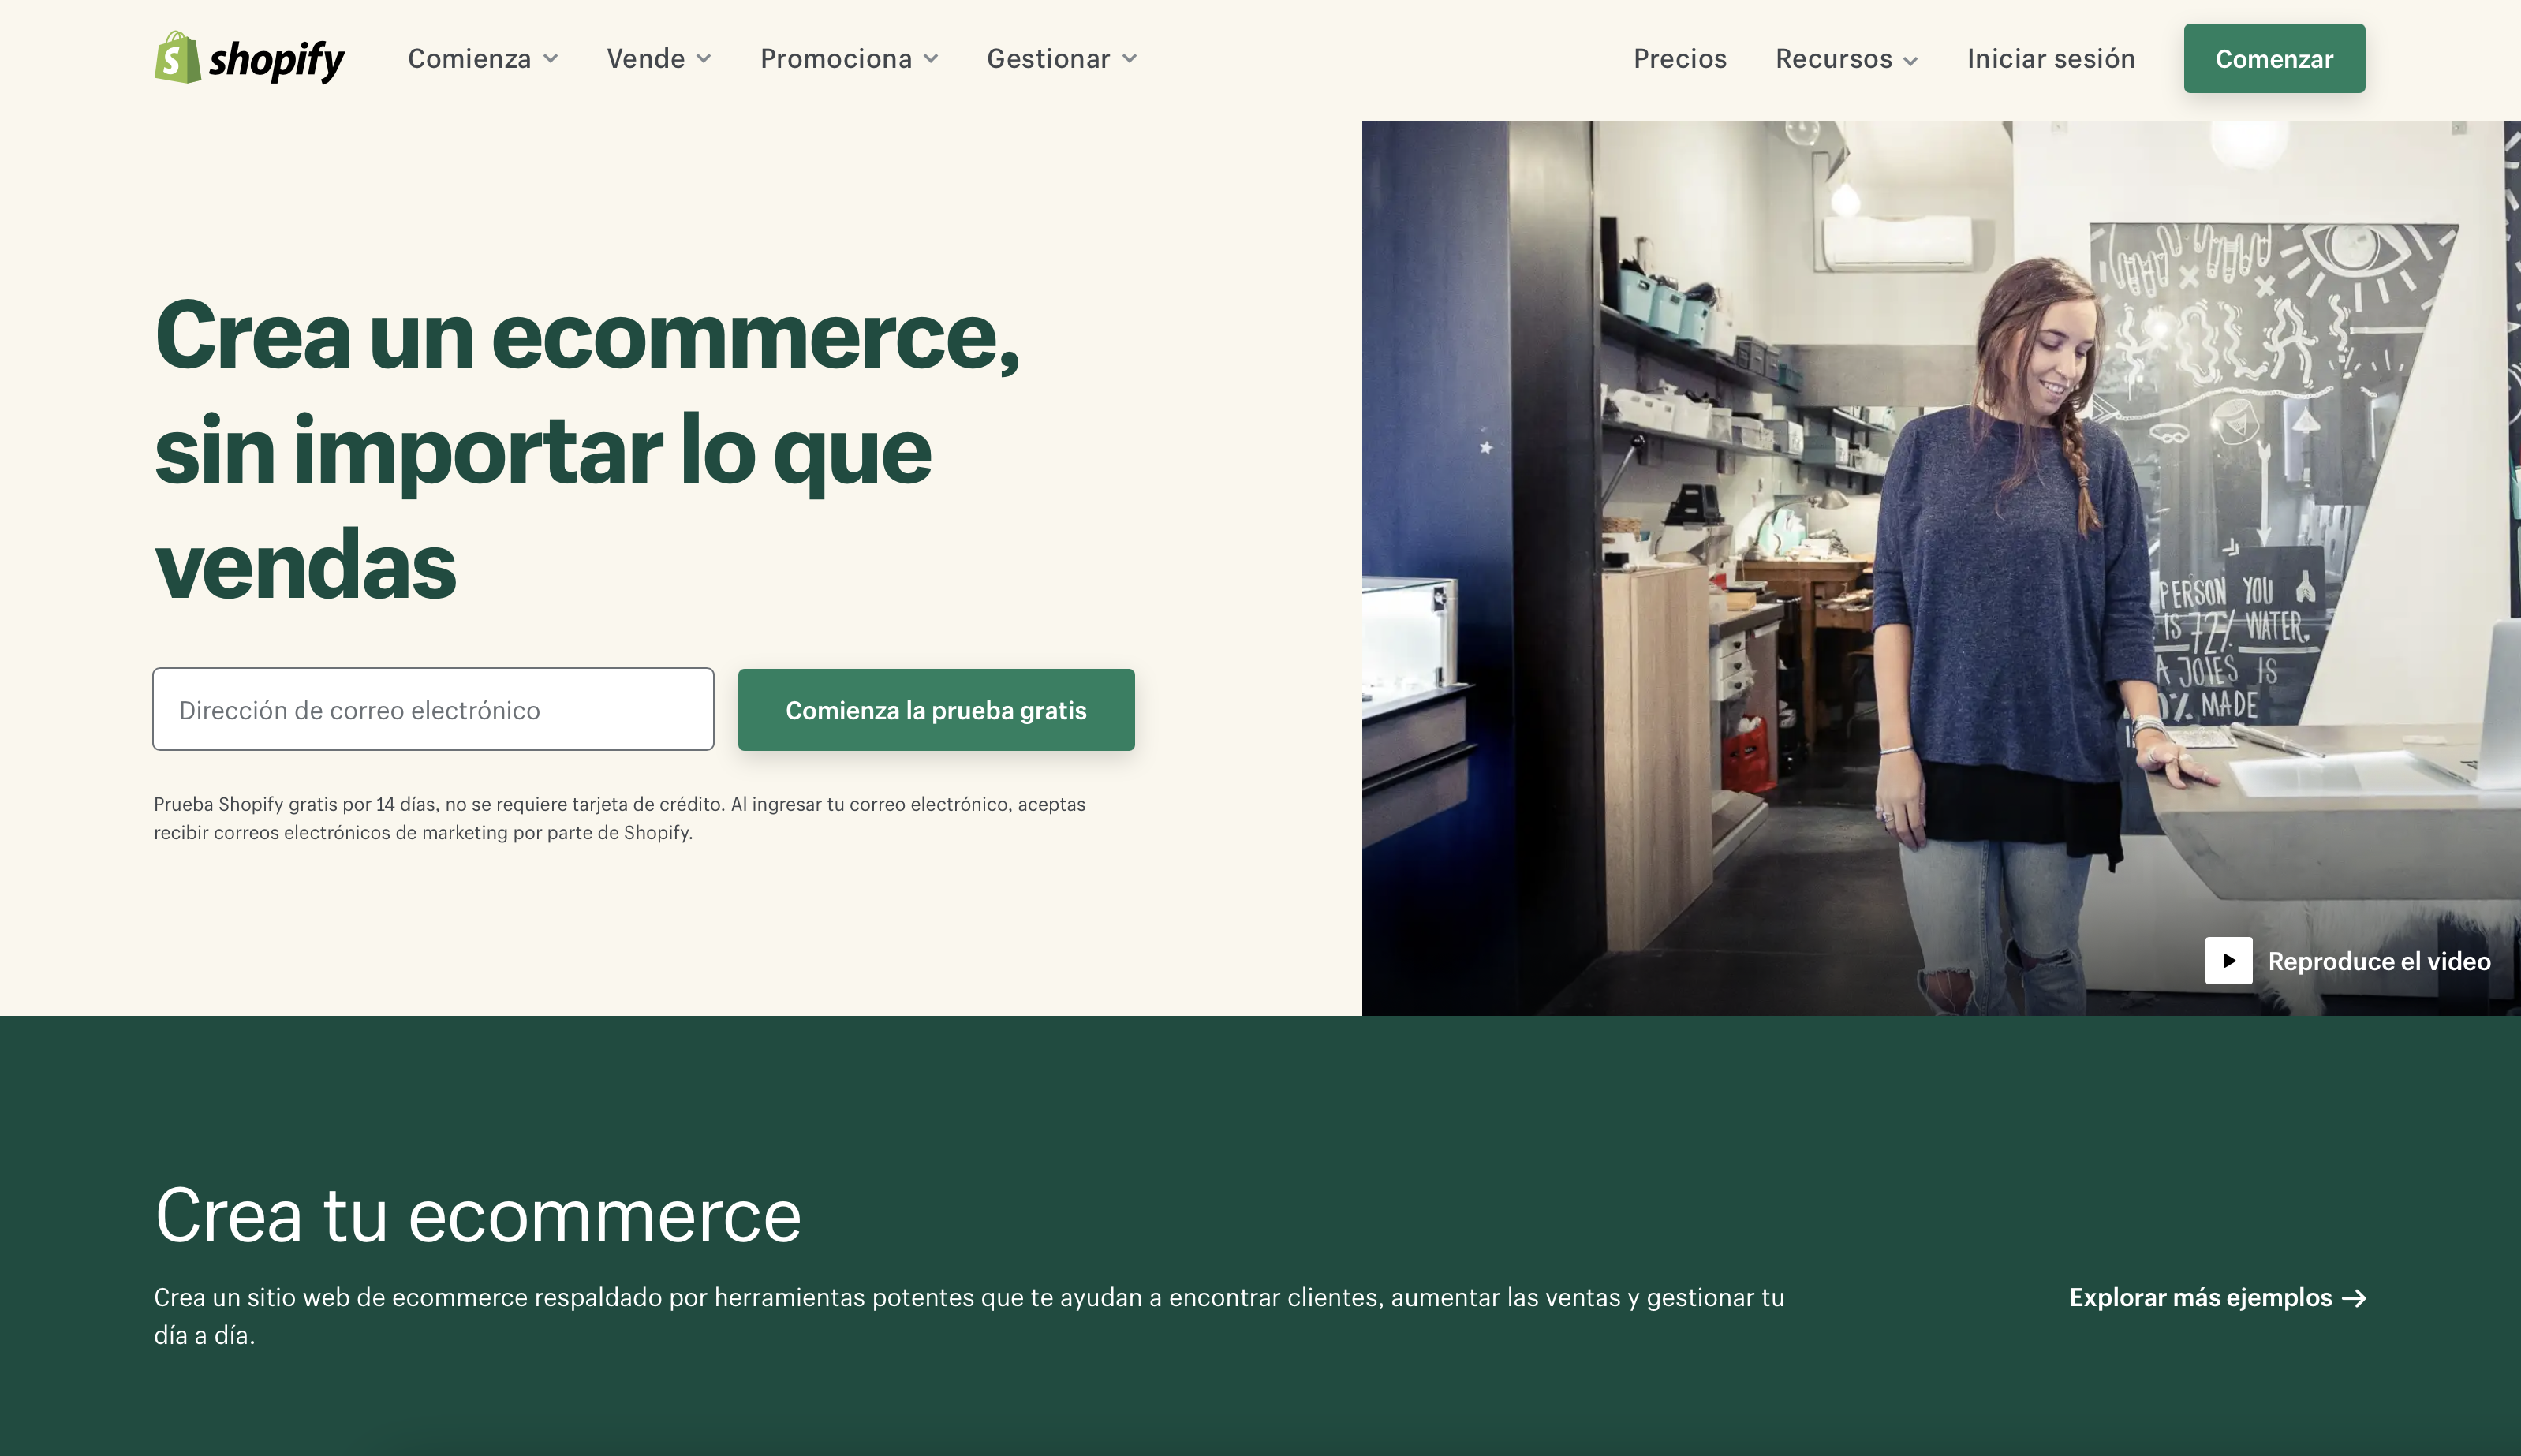 TikTok se alia con Shopify marketing digital noticias